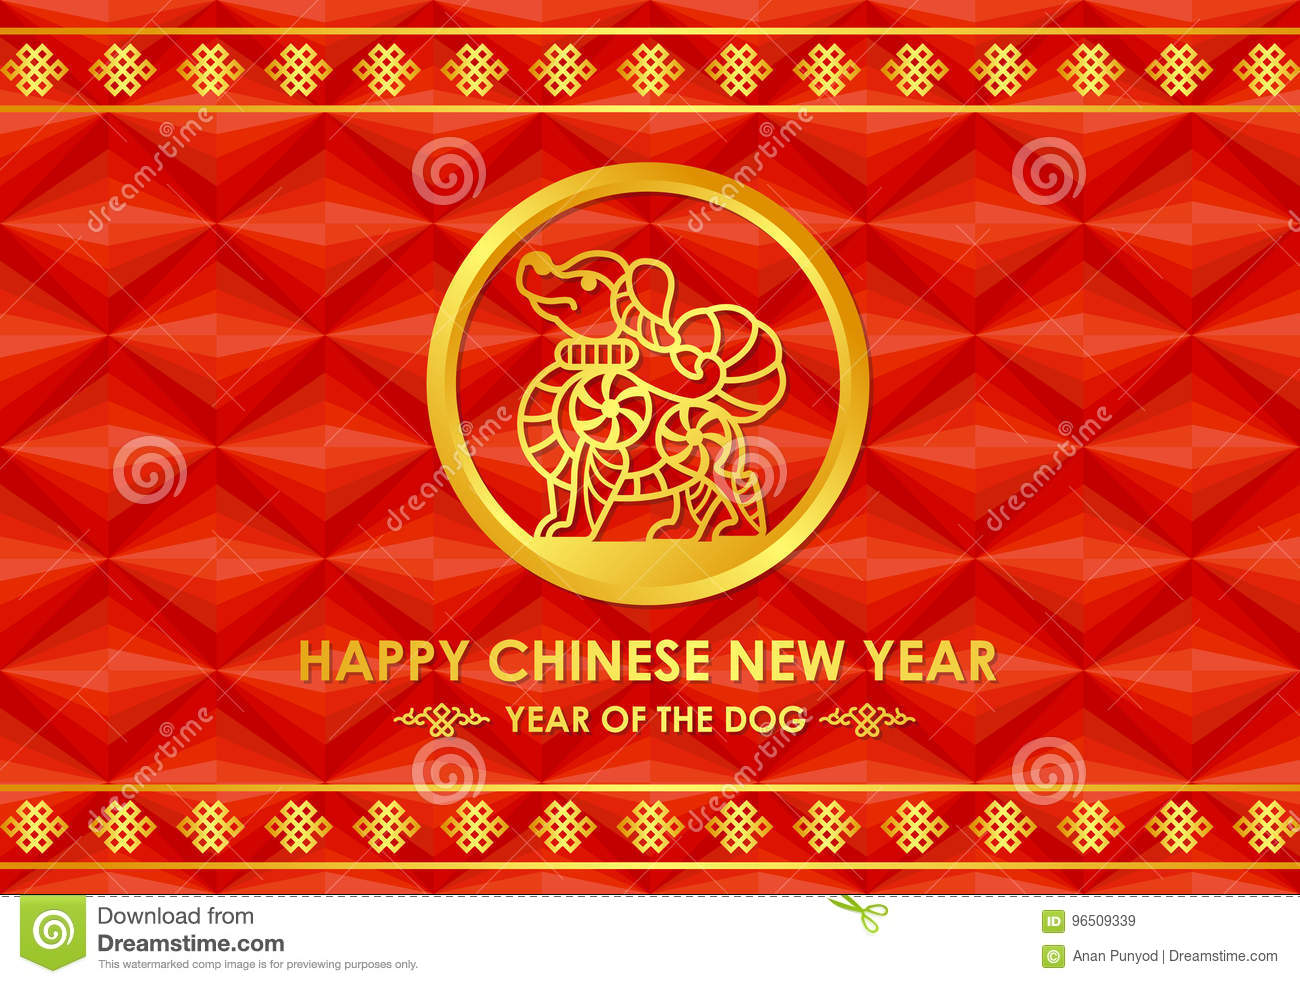 happy chinese new year 2018 card with gold dog zodiac line in circle on abstract red